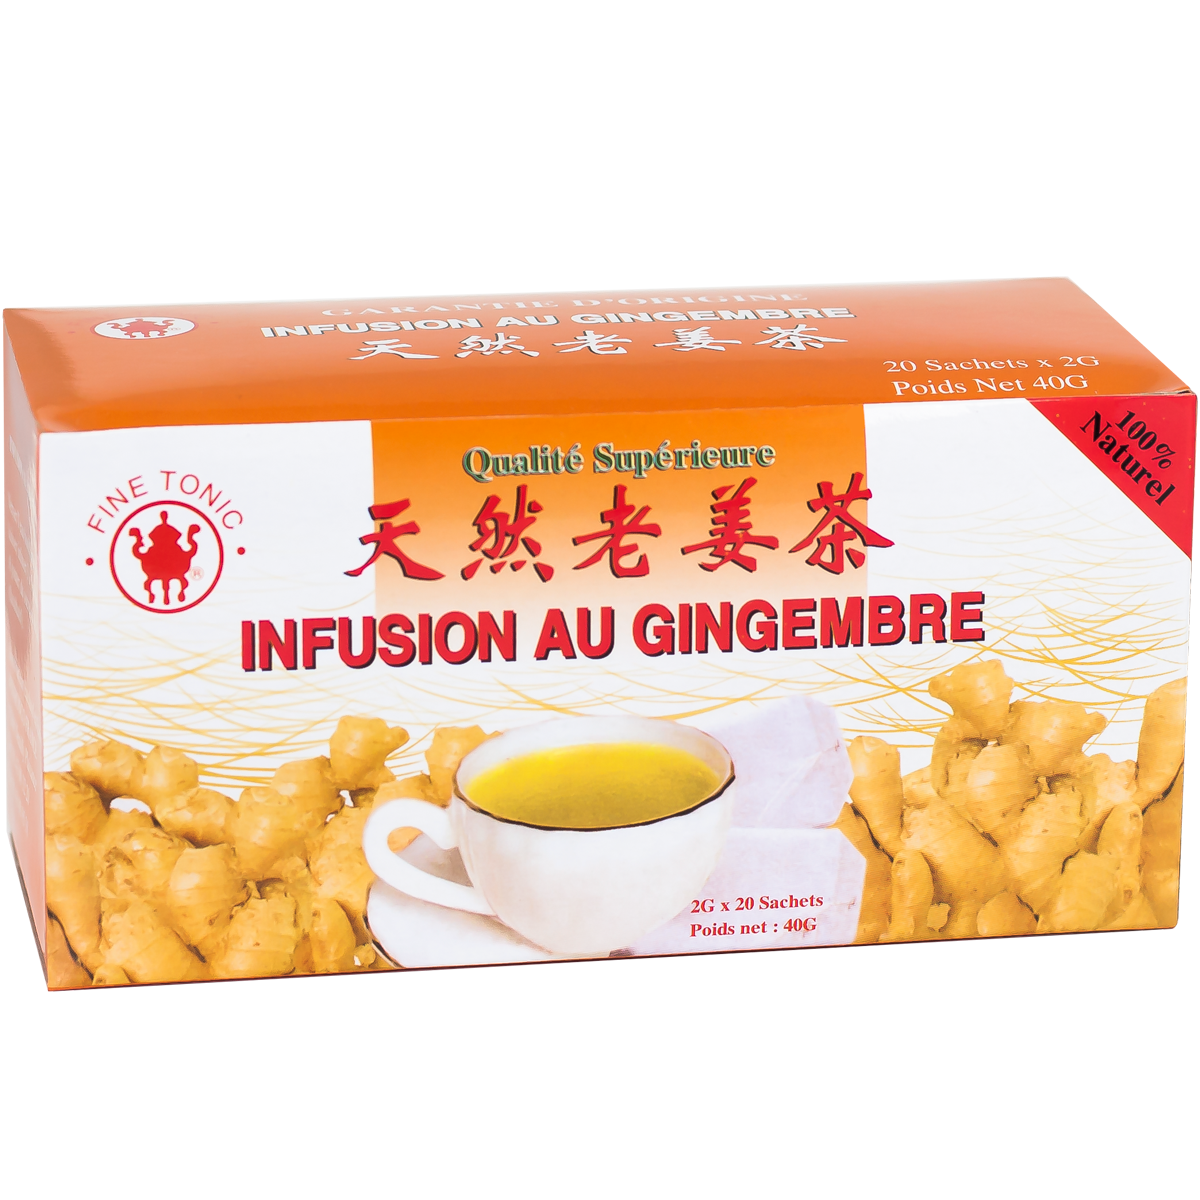 Infusion au Gingembre Image